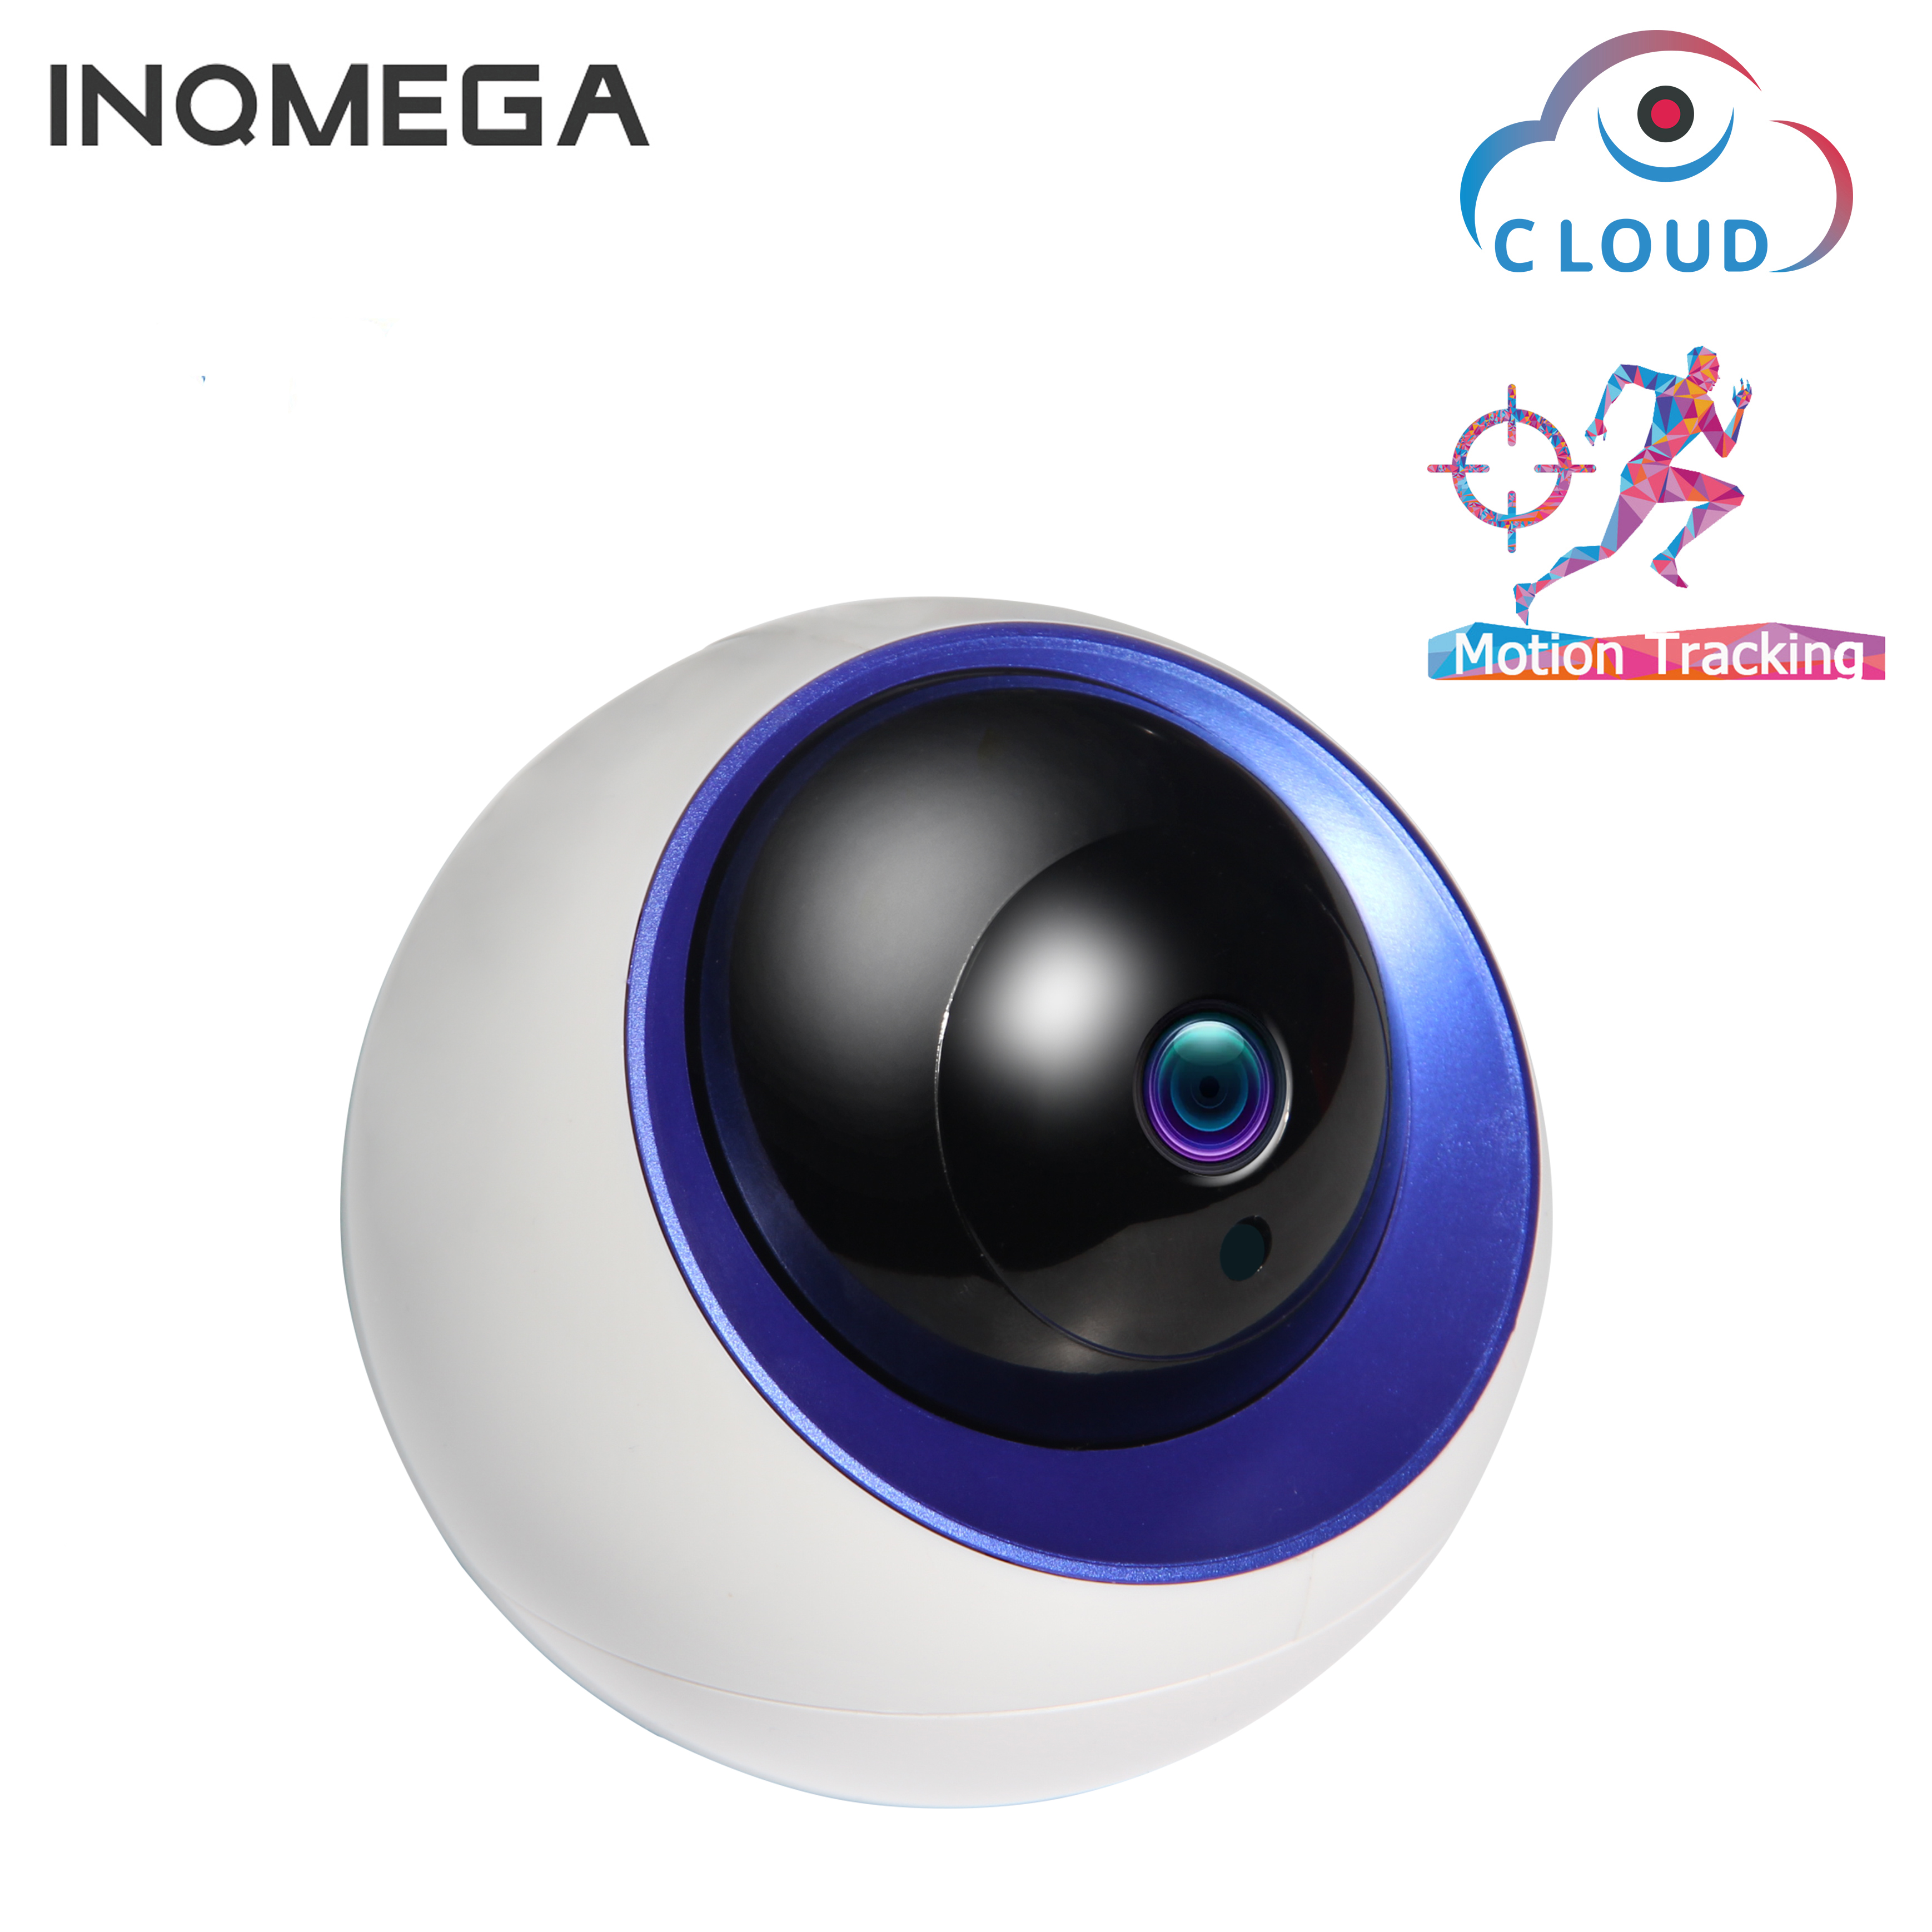 INQMEGA Cloud IP Dome Camera Auto Tracking 4MP 1080P Indoor Home Security Surveillance CCTV Camera Infrared/Audio/Alarm/Pan/TiltINQMEGA Cloud IP Dome Camera Auto Tracking 4MP 1080P Indoor Home Security Surveillance CCTV Camera Infrared/Audio/Alarm/Pan/Tilt